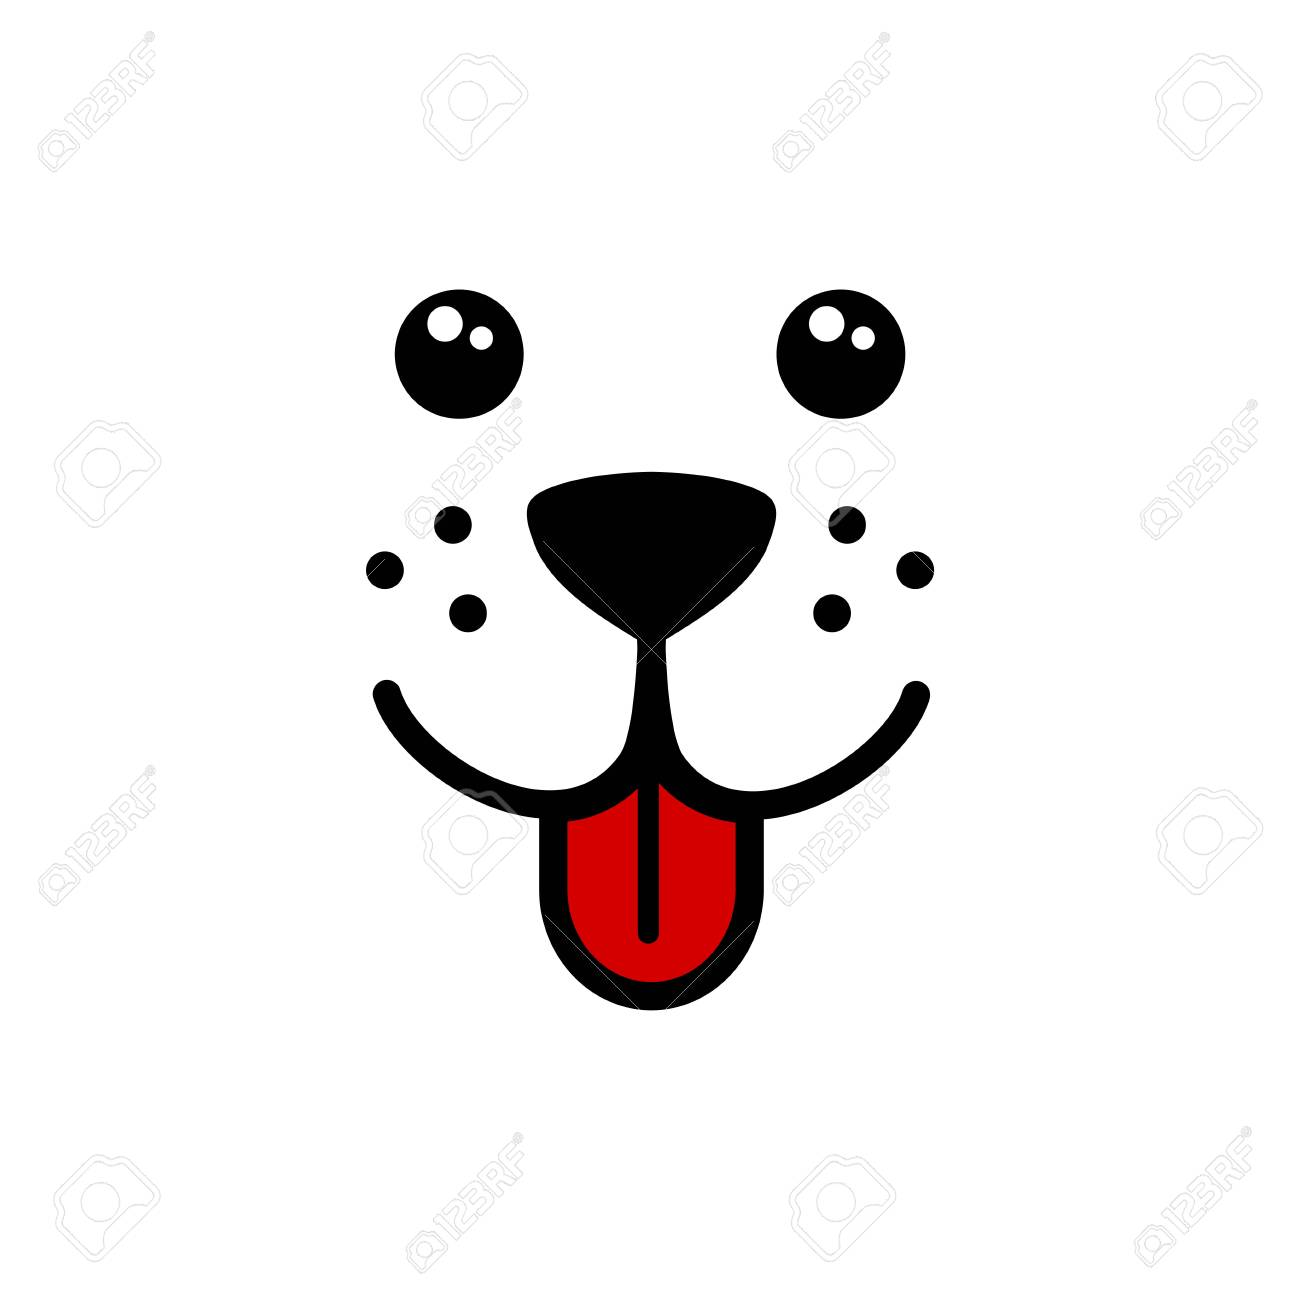 Cute Simple Dog Face Vector Royalty Free Cliparts Vectors And Stock Illustration Image 107876020